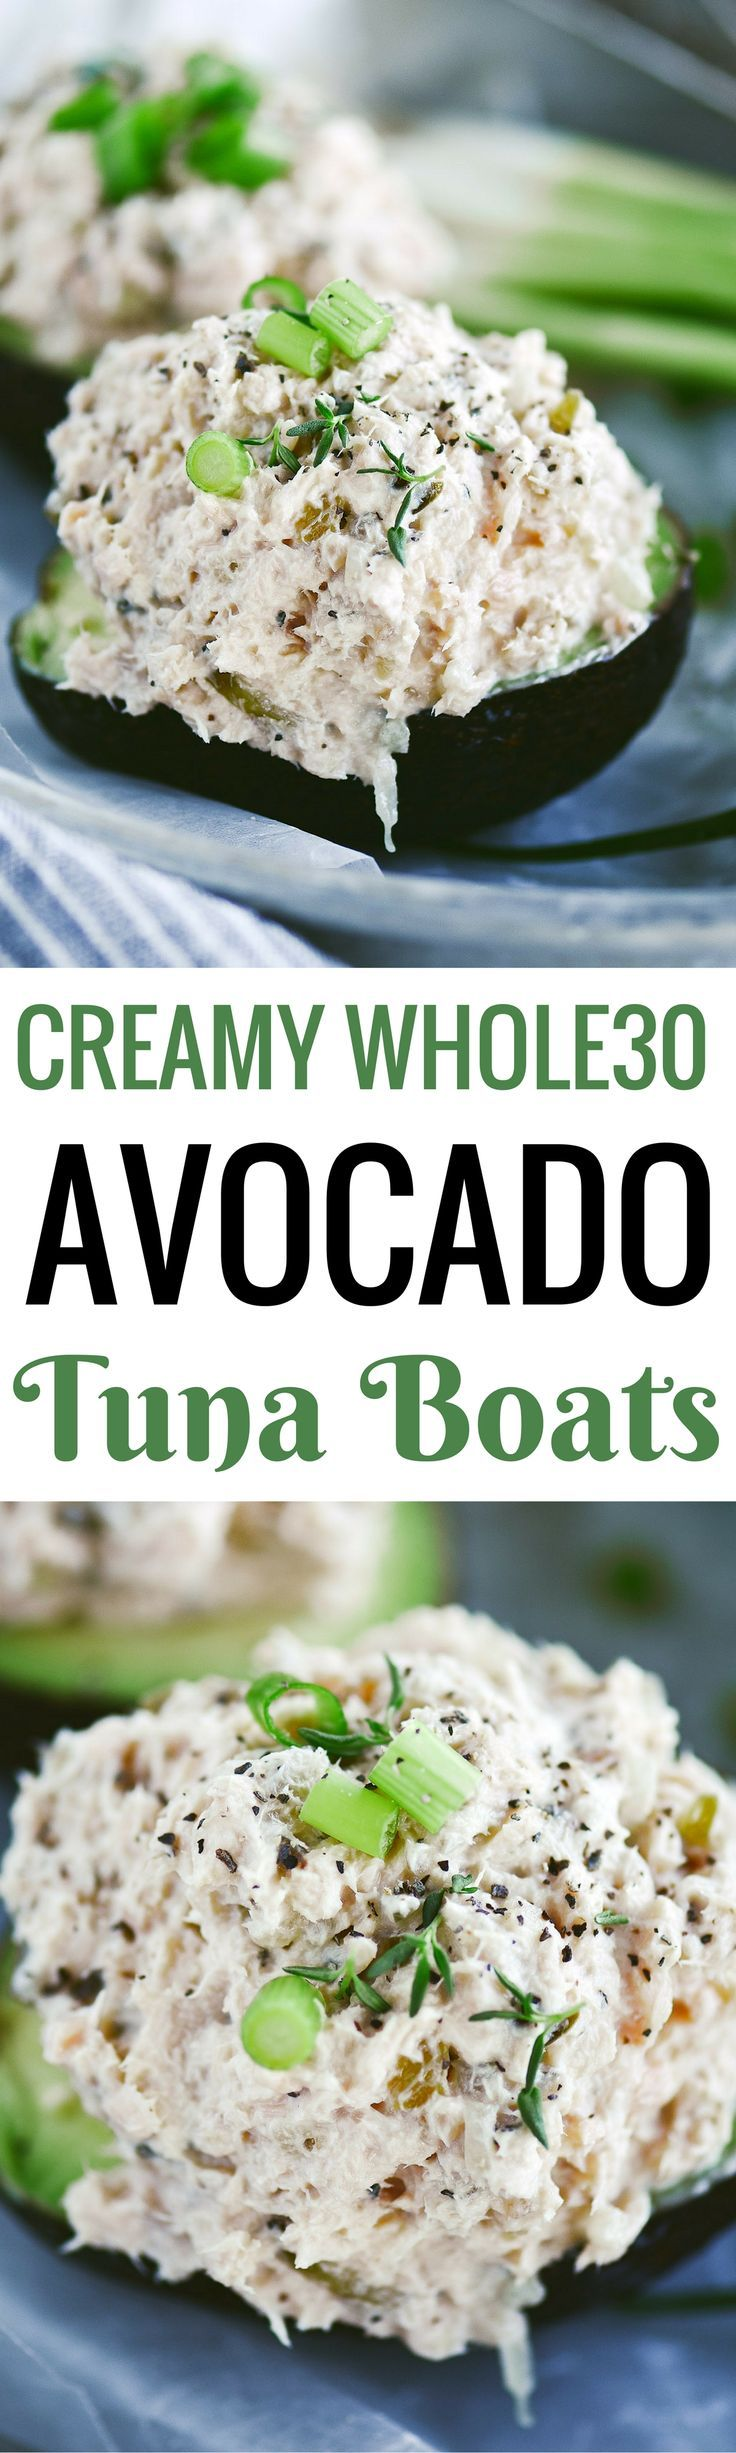 5 minute Whole30 lunch on the go! creamy whole30 tuna avocado boats- topped with fresh herbs and SO healthy and easy! Whole30 meal ideas. whole30 meal plan. Easy whole30 dinner recipes. Easy whole30 dinner recipes. Whole30 recipes. Whole30 lunch. Whole30